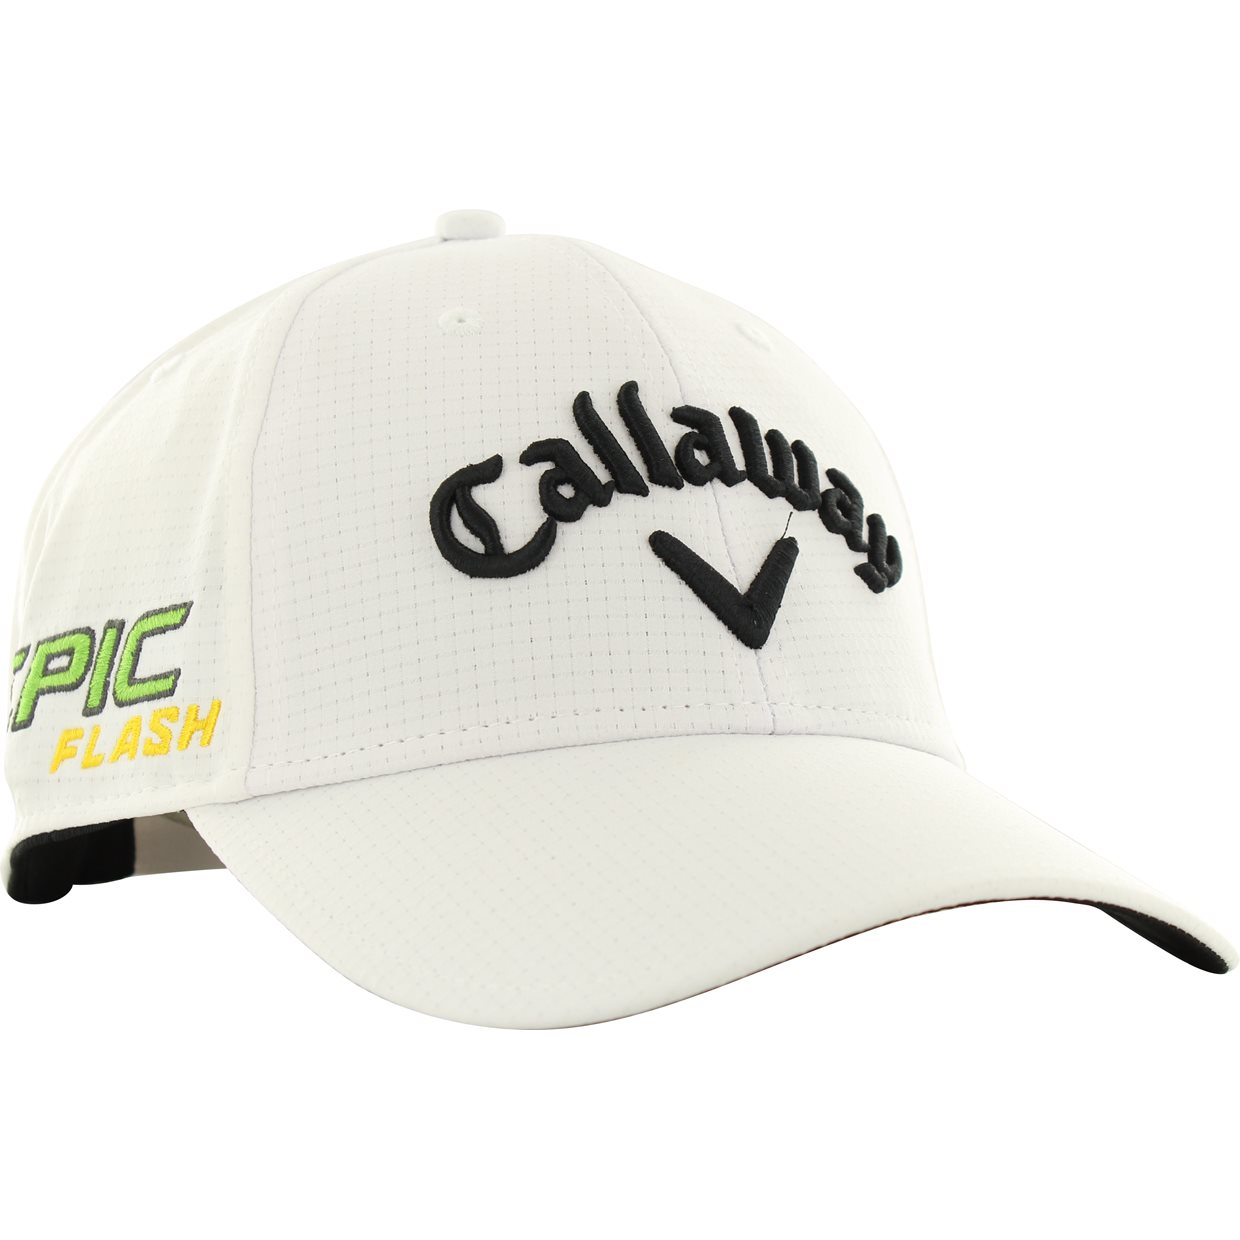 Callaway Tour Authentic Performance Pro 2019 Headwear Apparel at ... dd888d993f8